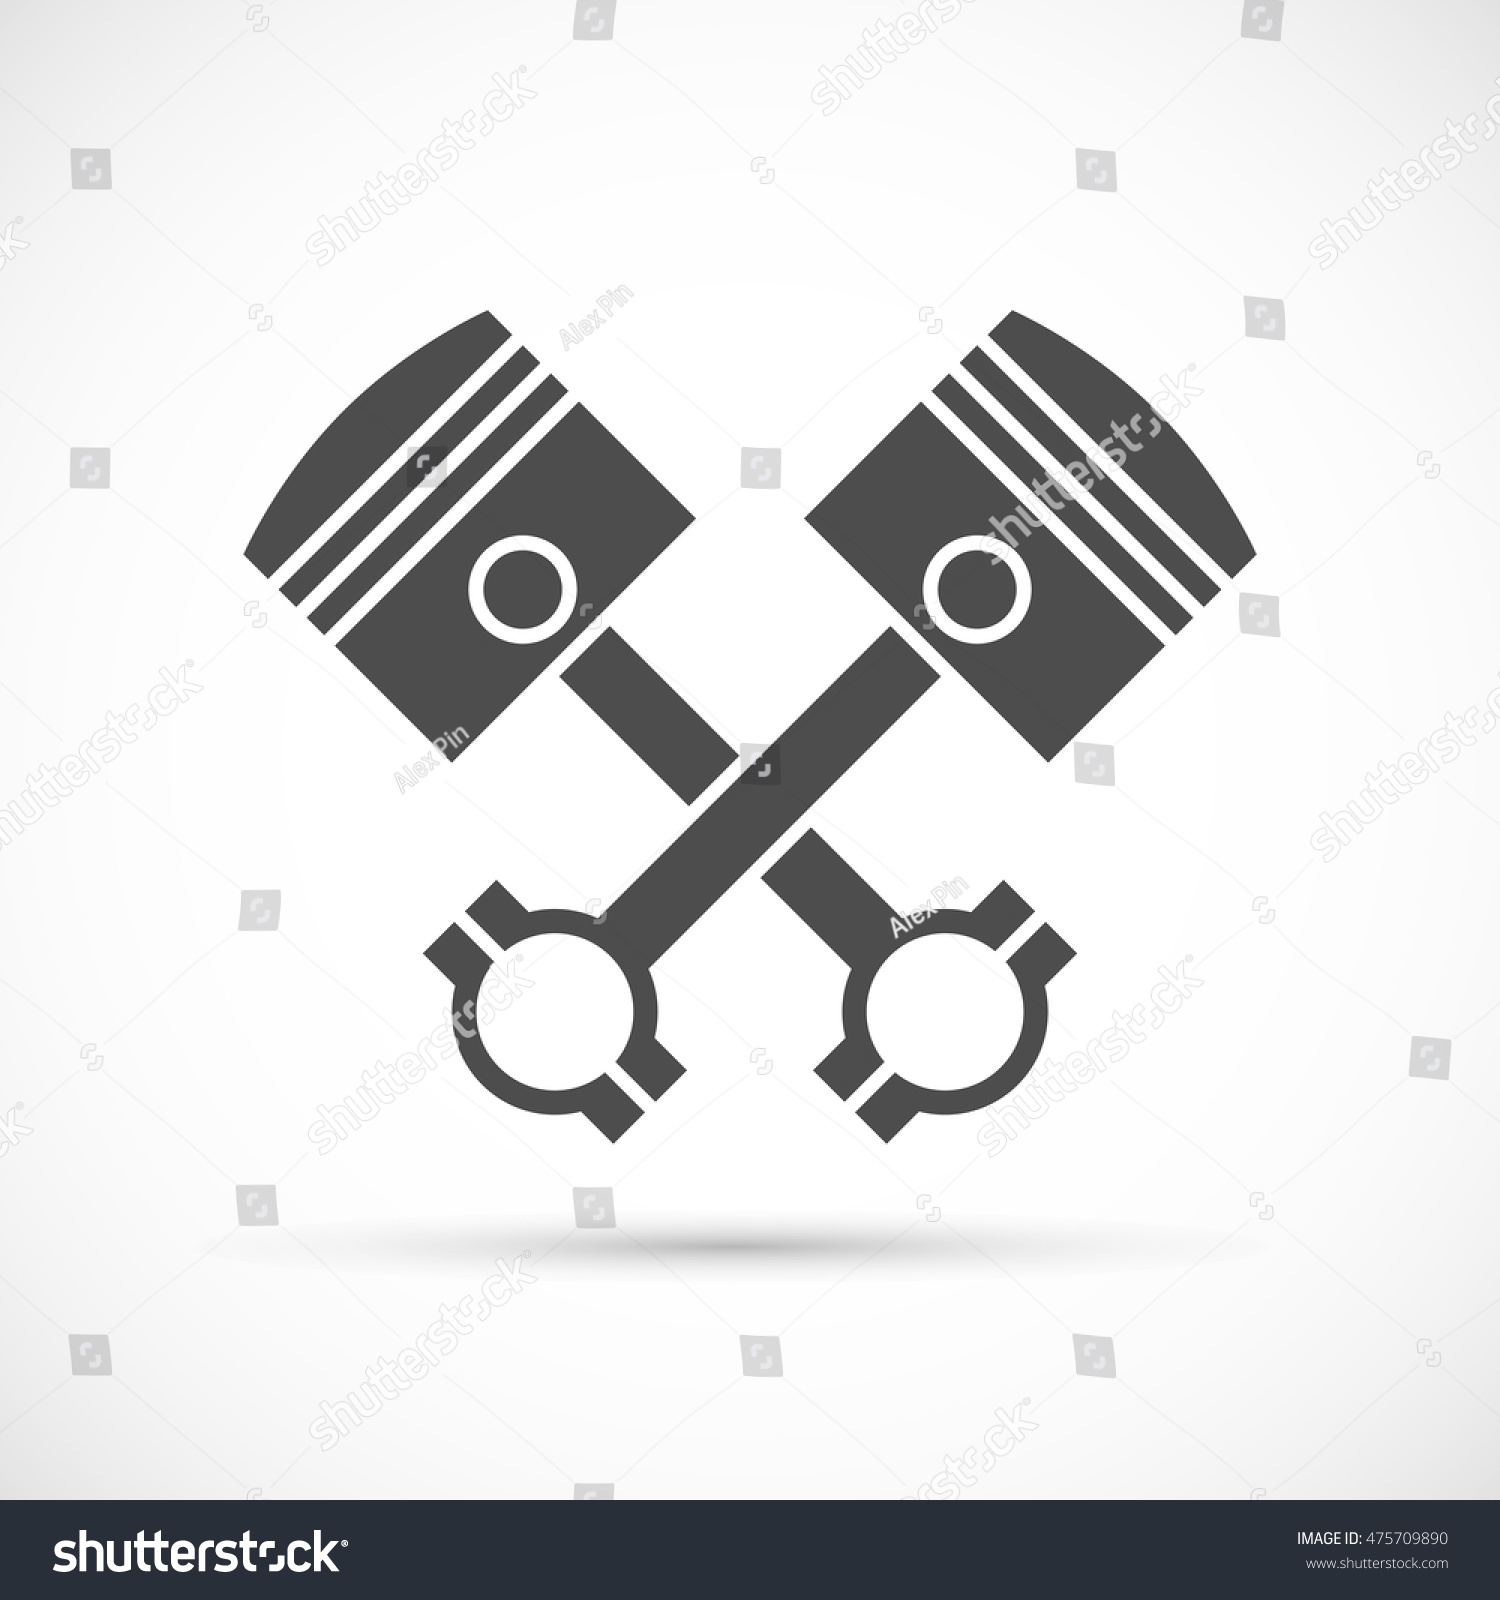 Crossed Engine Pistons Icon Stock Vector Royalty Free 475709890 Diagram Schedule